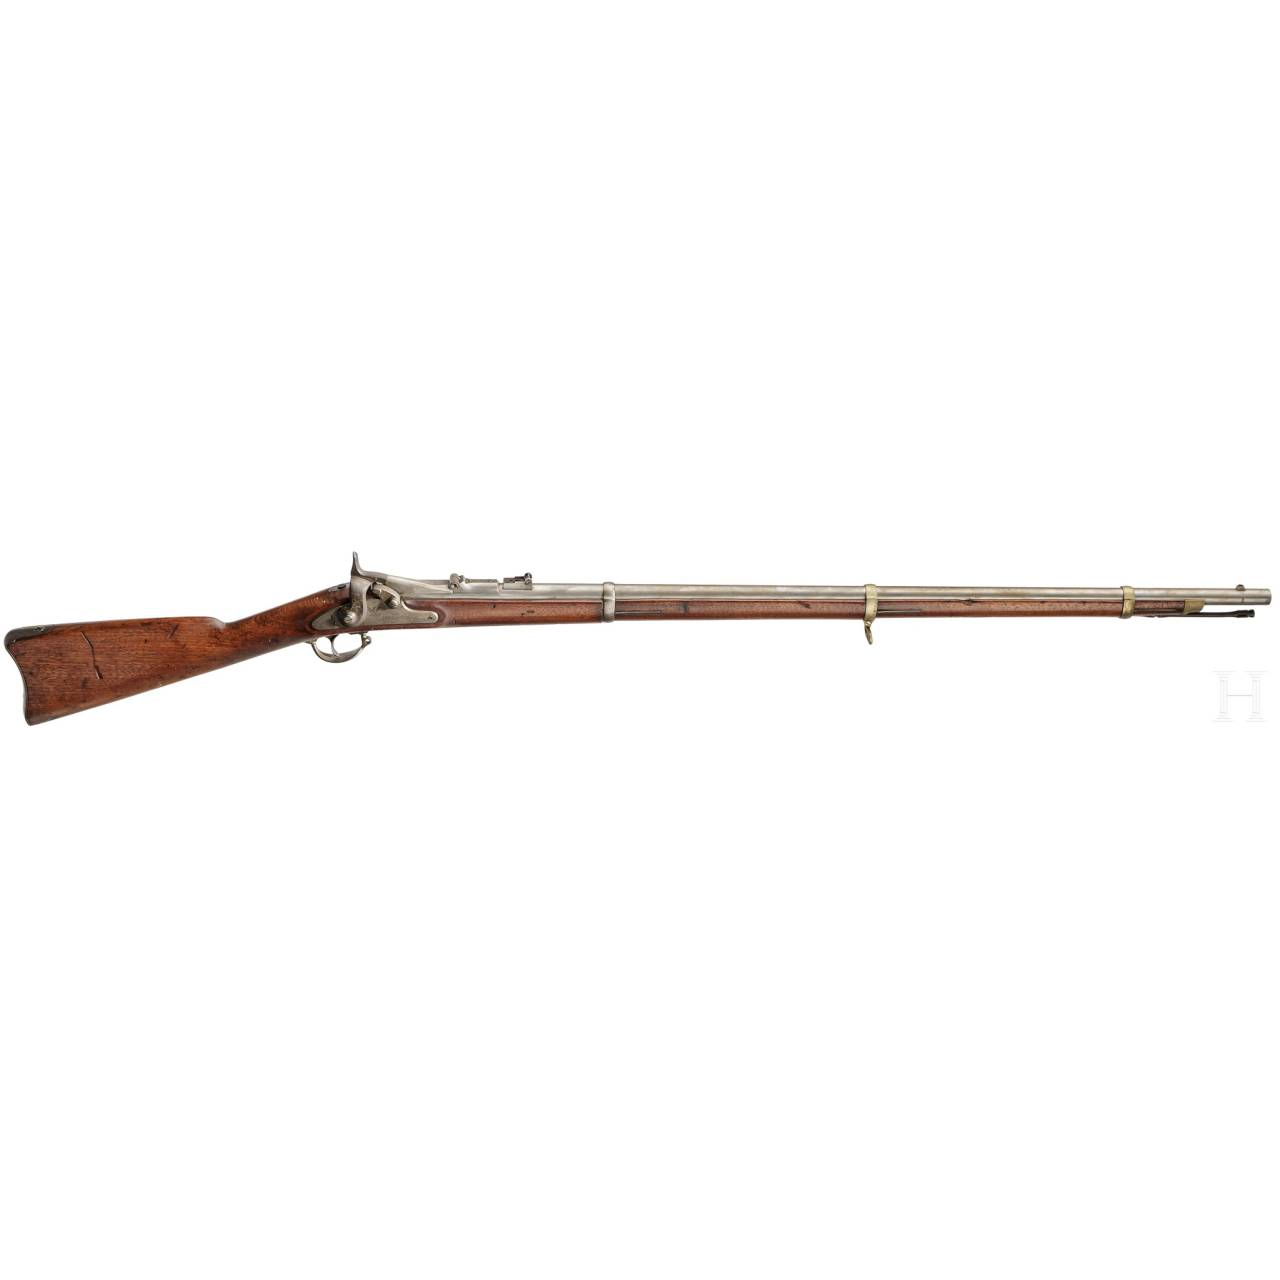 Allin Conversion Model 1866 Rifle